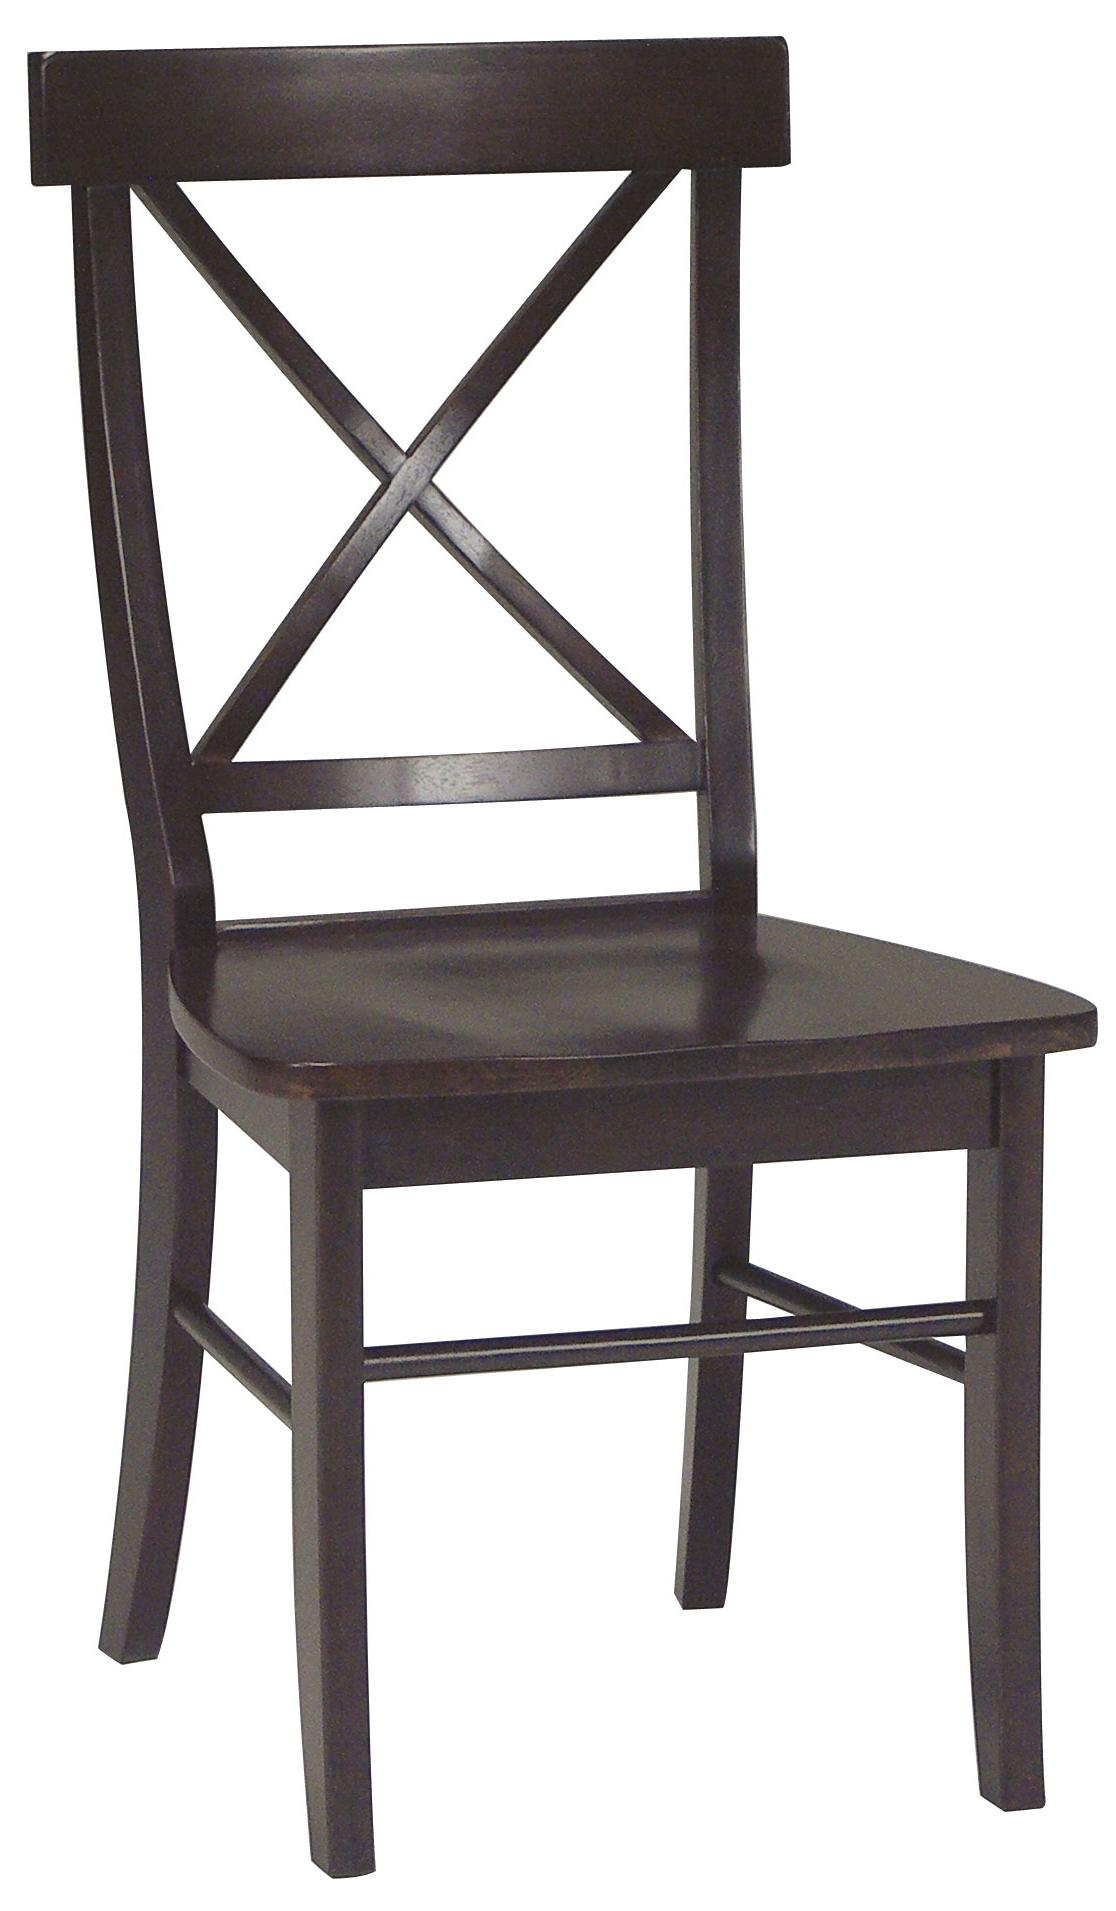 John Thomas Dining Essentials X-Back Side Chair - Item Number: C15-613